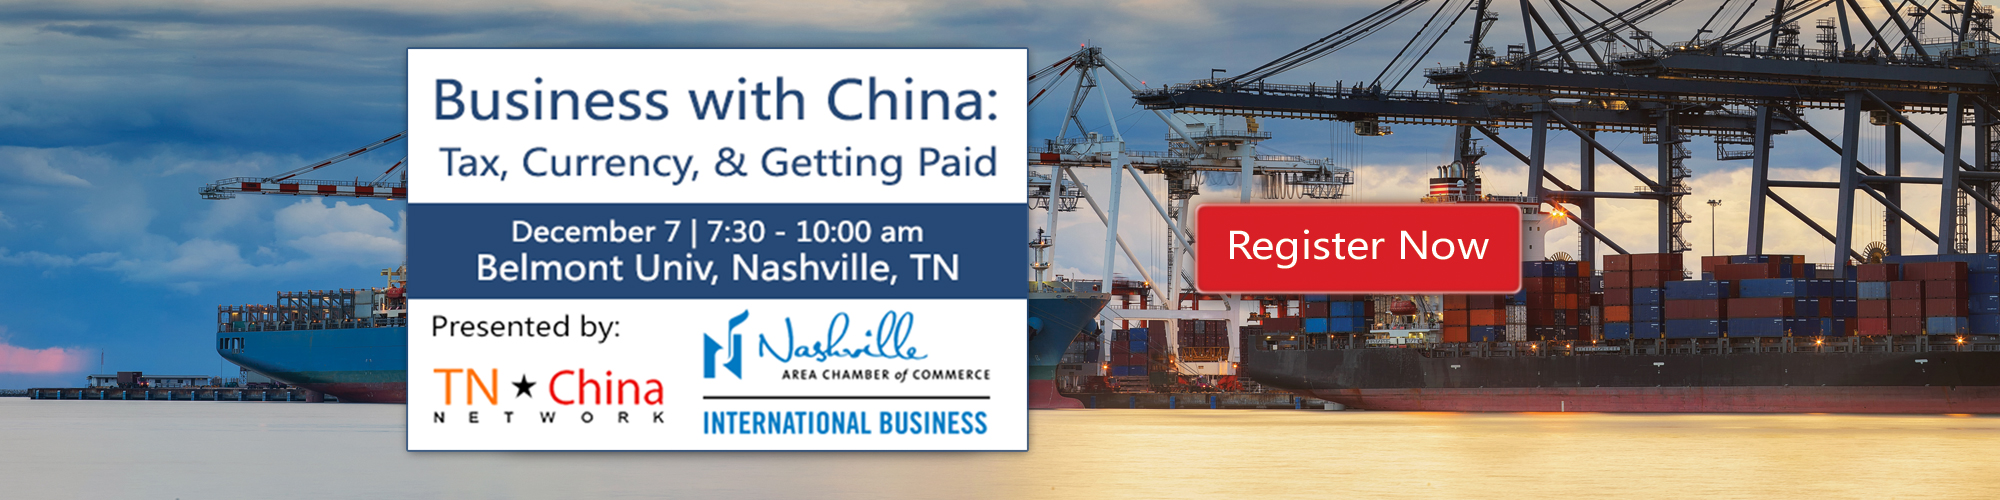 Business with China: Tax, Currency, & Getting Paid Seminar Announcement